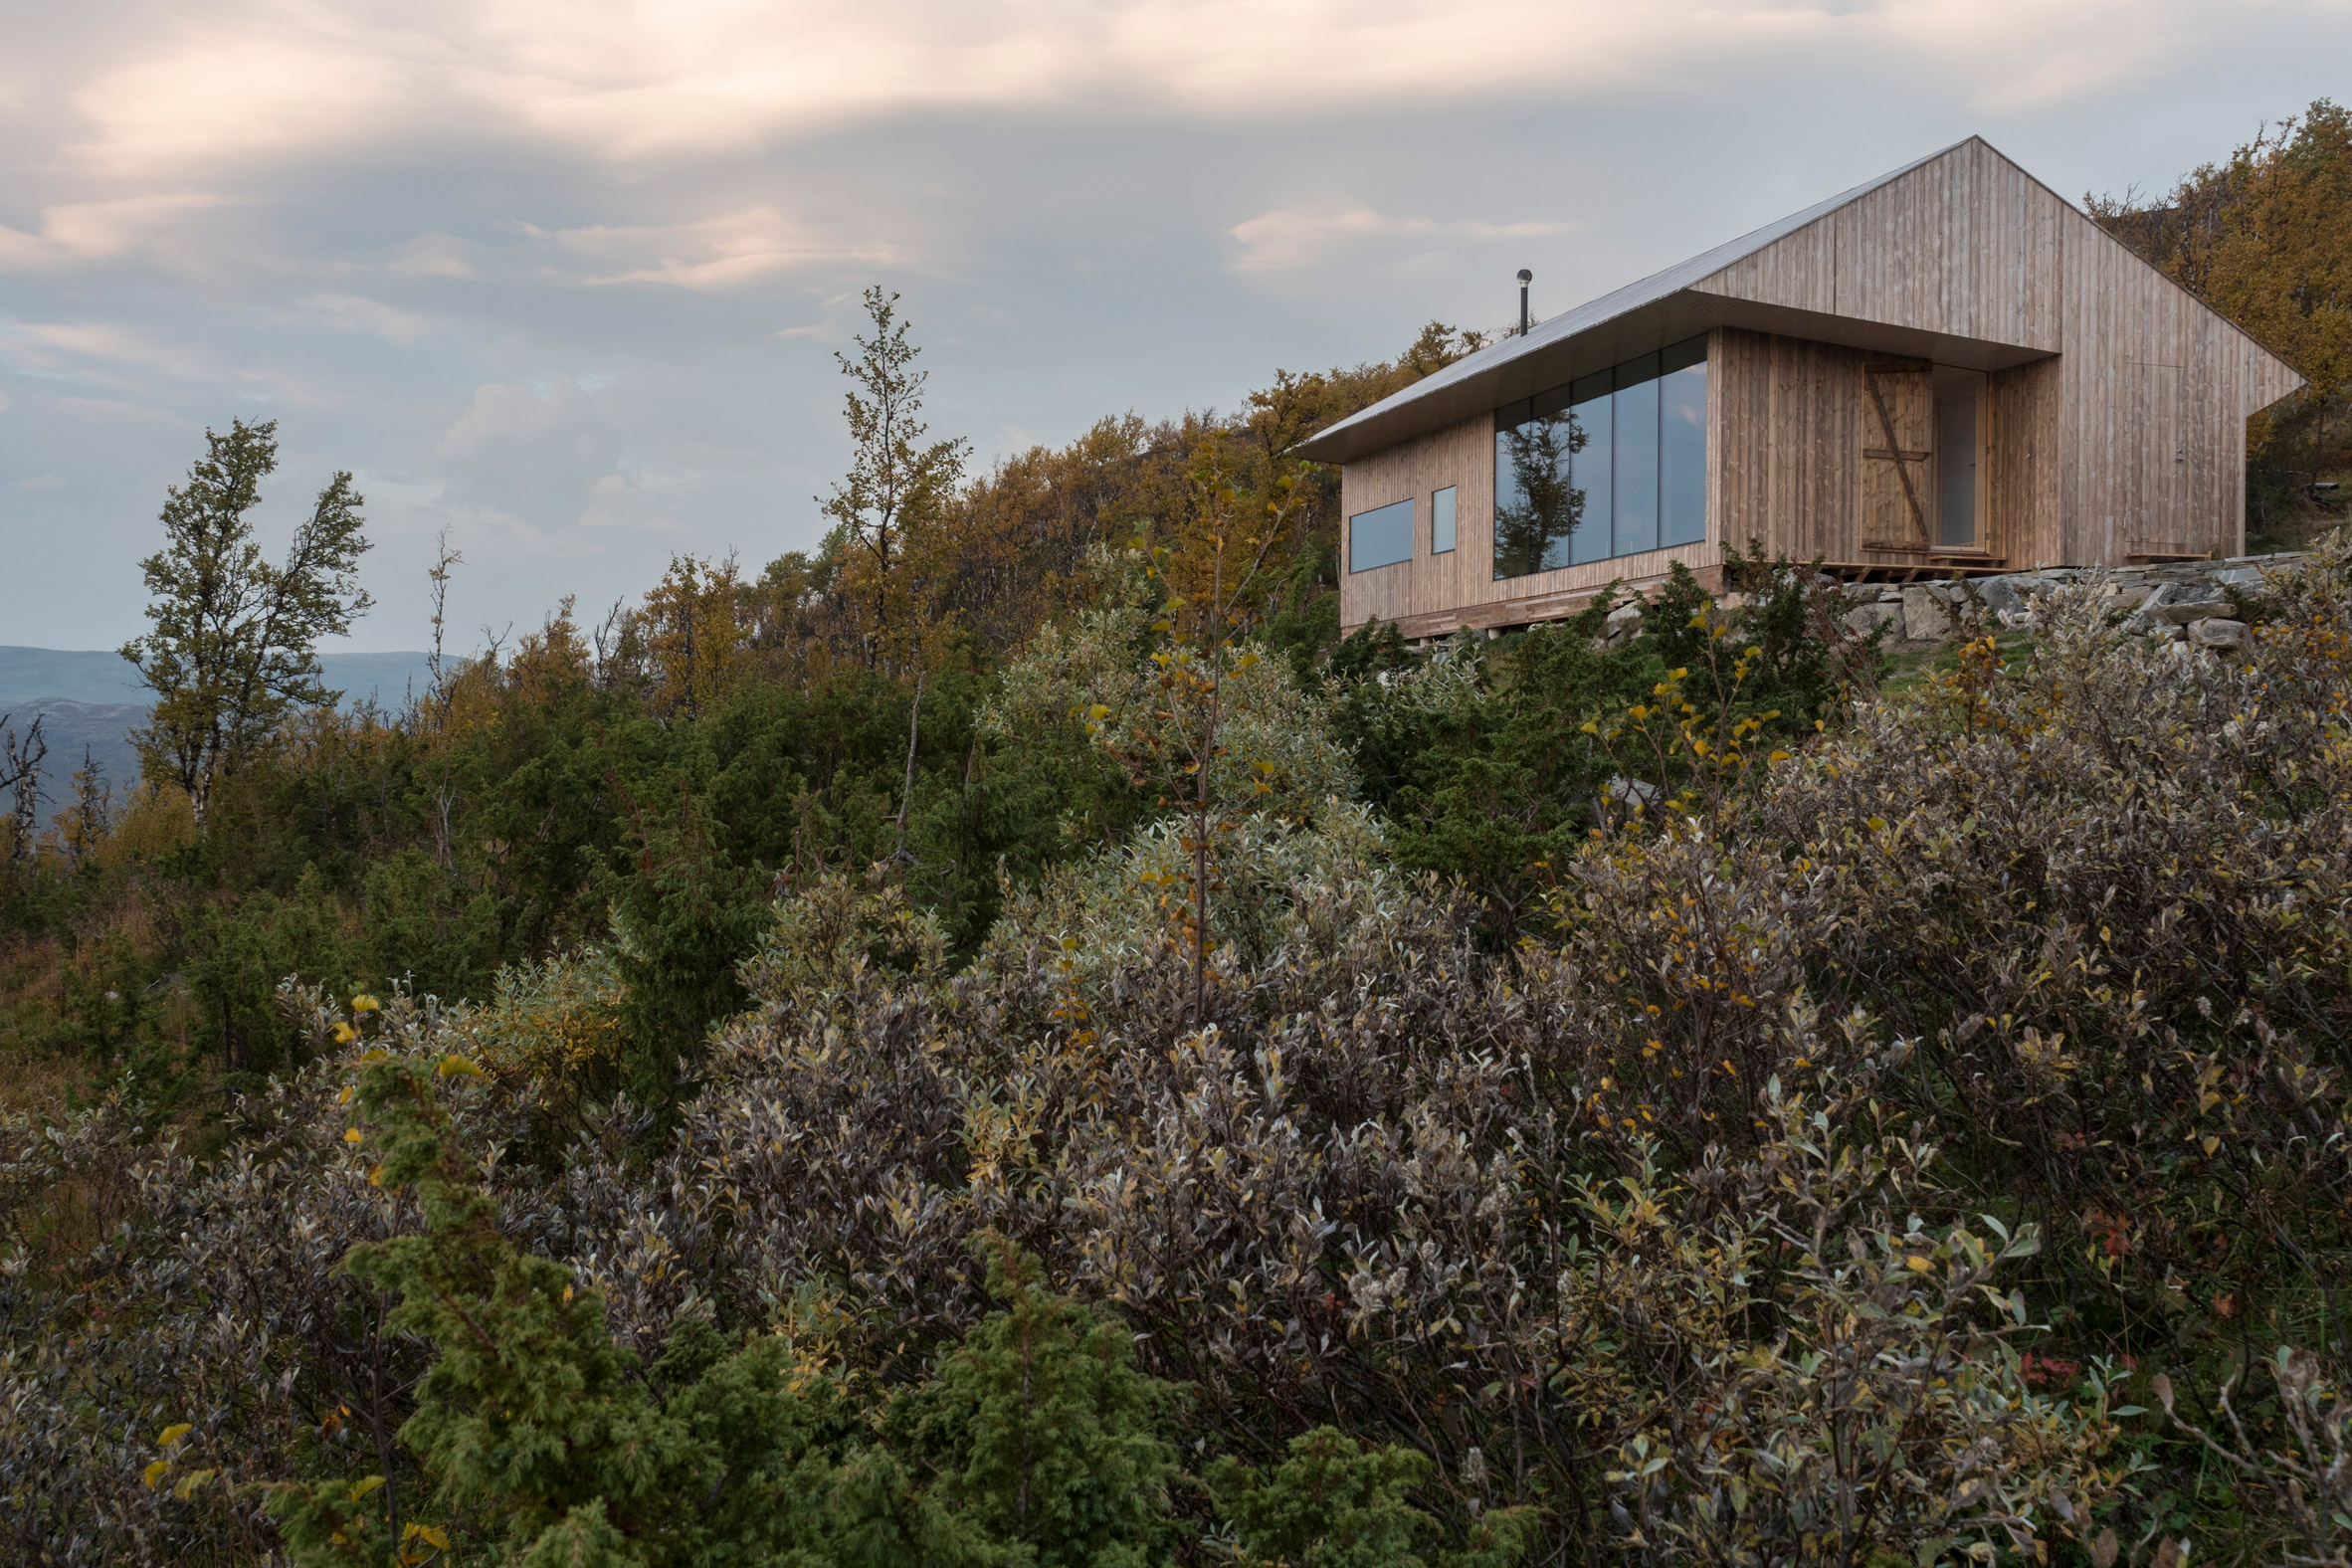 Jon Danielsen Aarhus creates pine-clad mountain cabin in Norway for himself